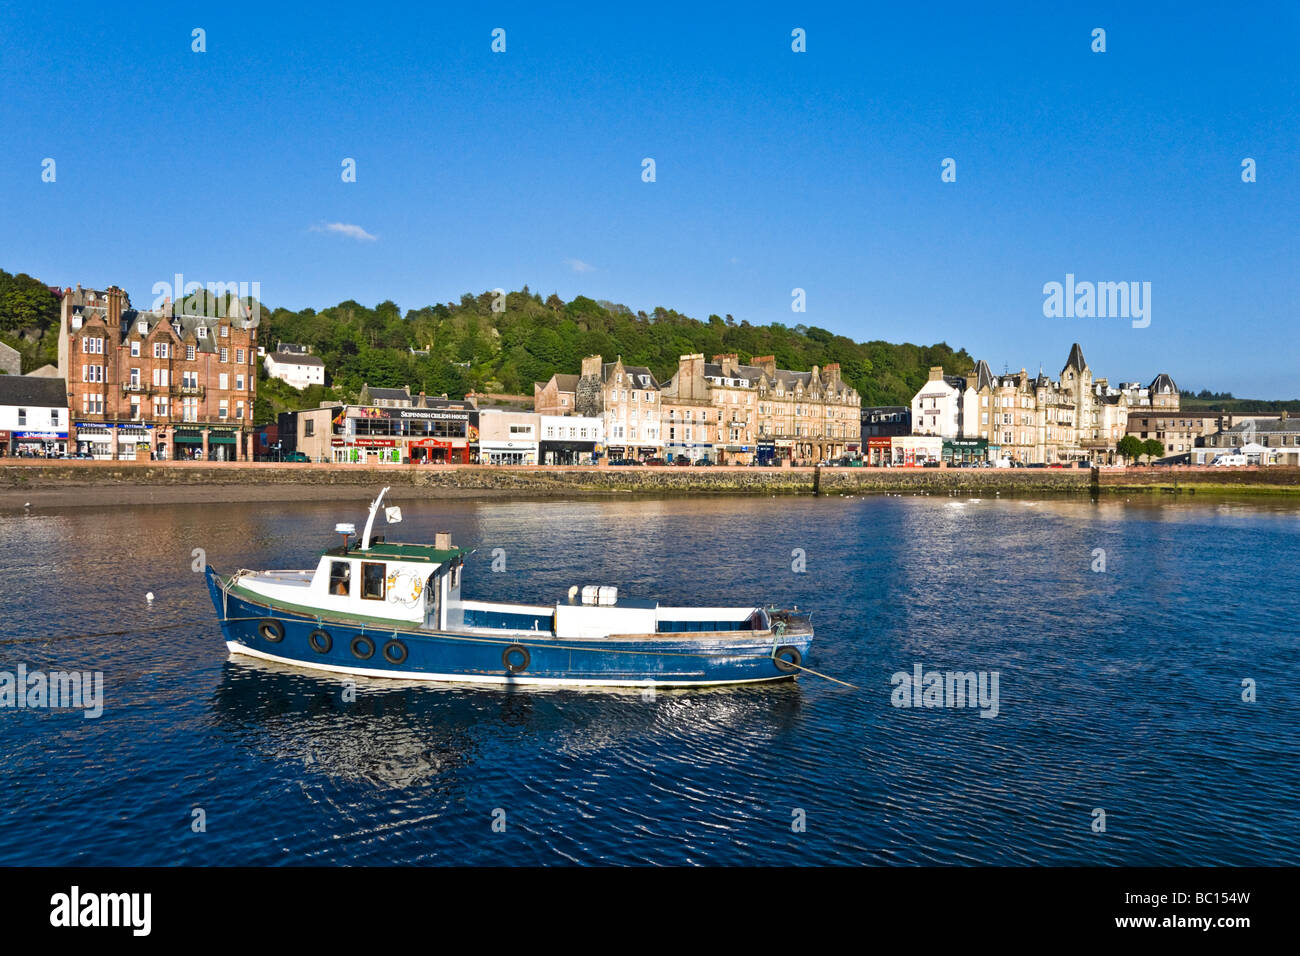 George Street in Oban Argyll Scotland on a sunny May day - Stock Image